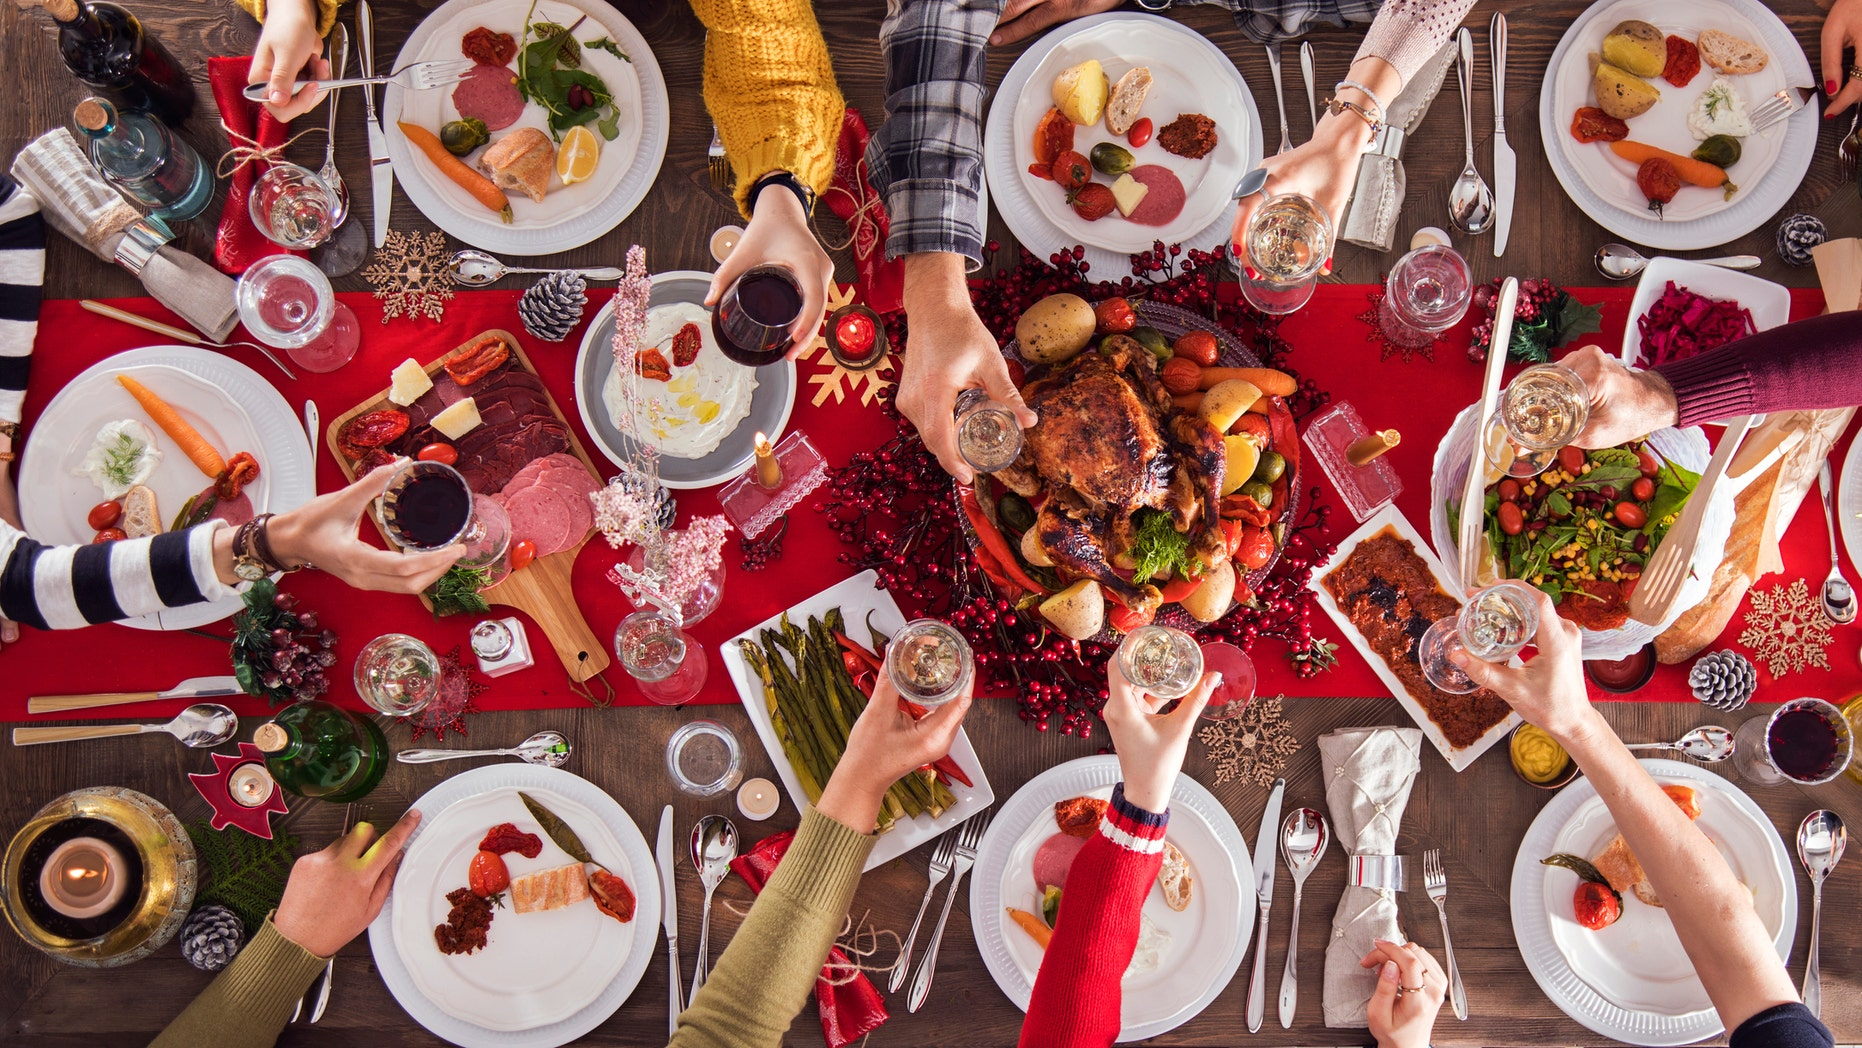 According to Sweden's Lund University researchers, a person's risk for heart attack reaches its peak when the clock strikes 10 p.m. on Dec. 24.